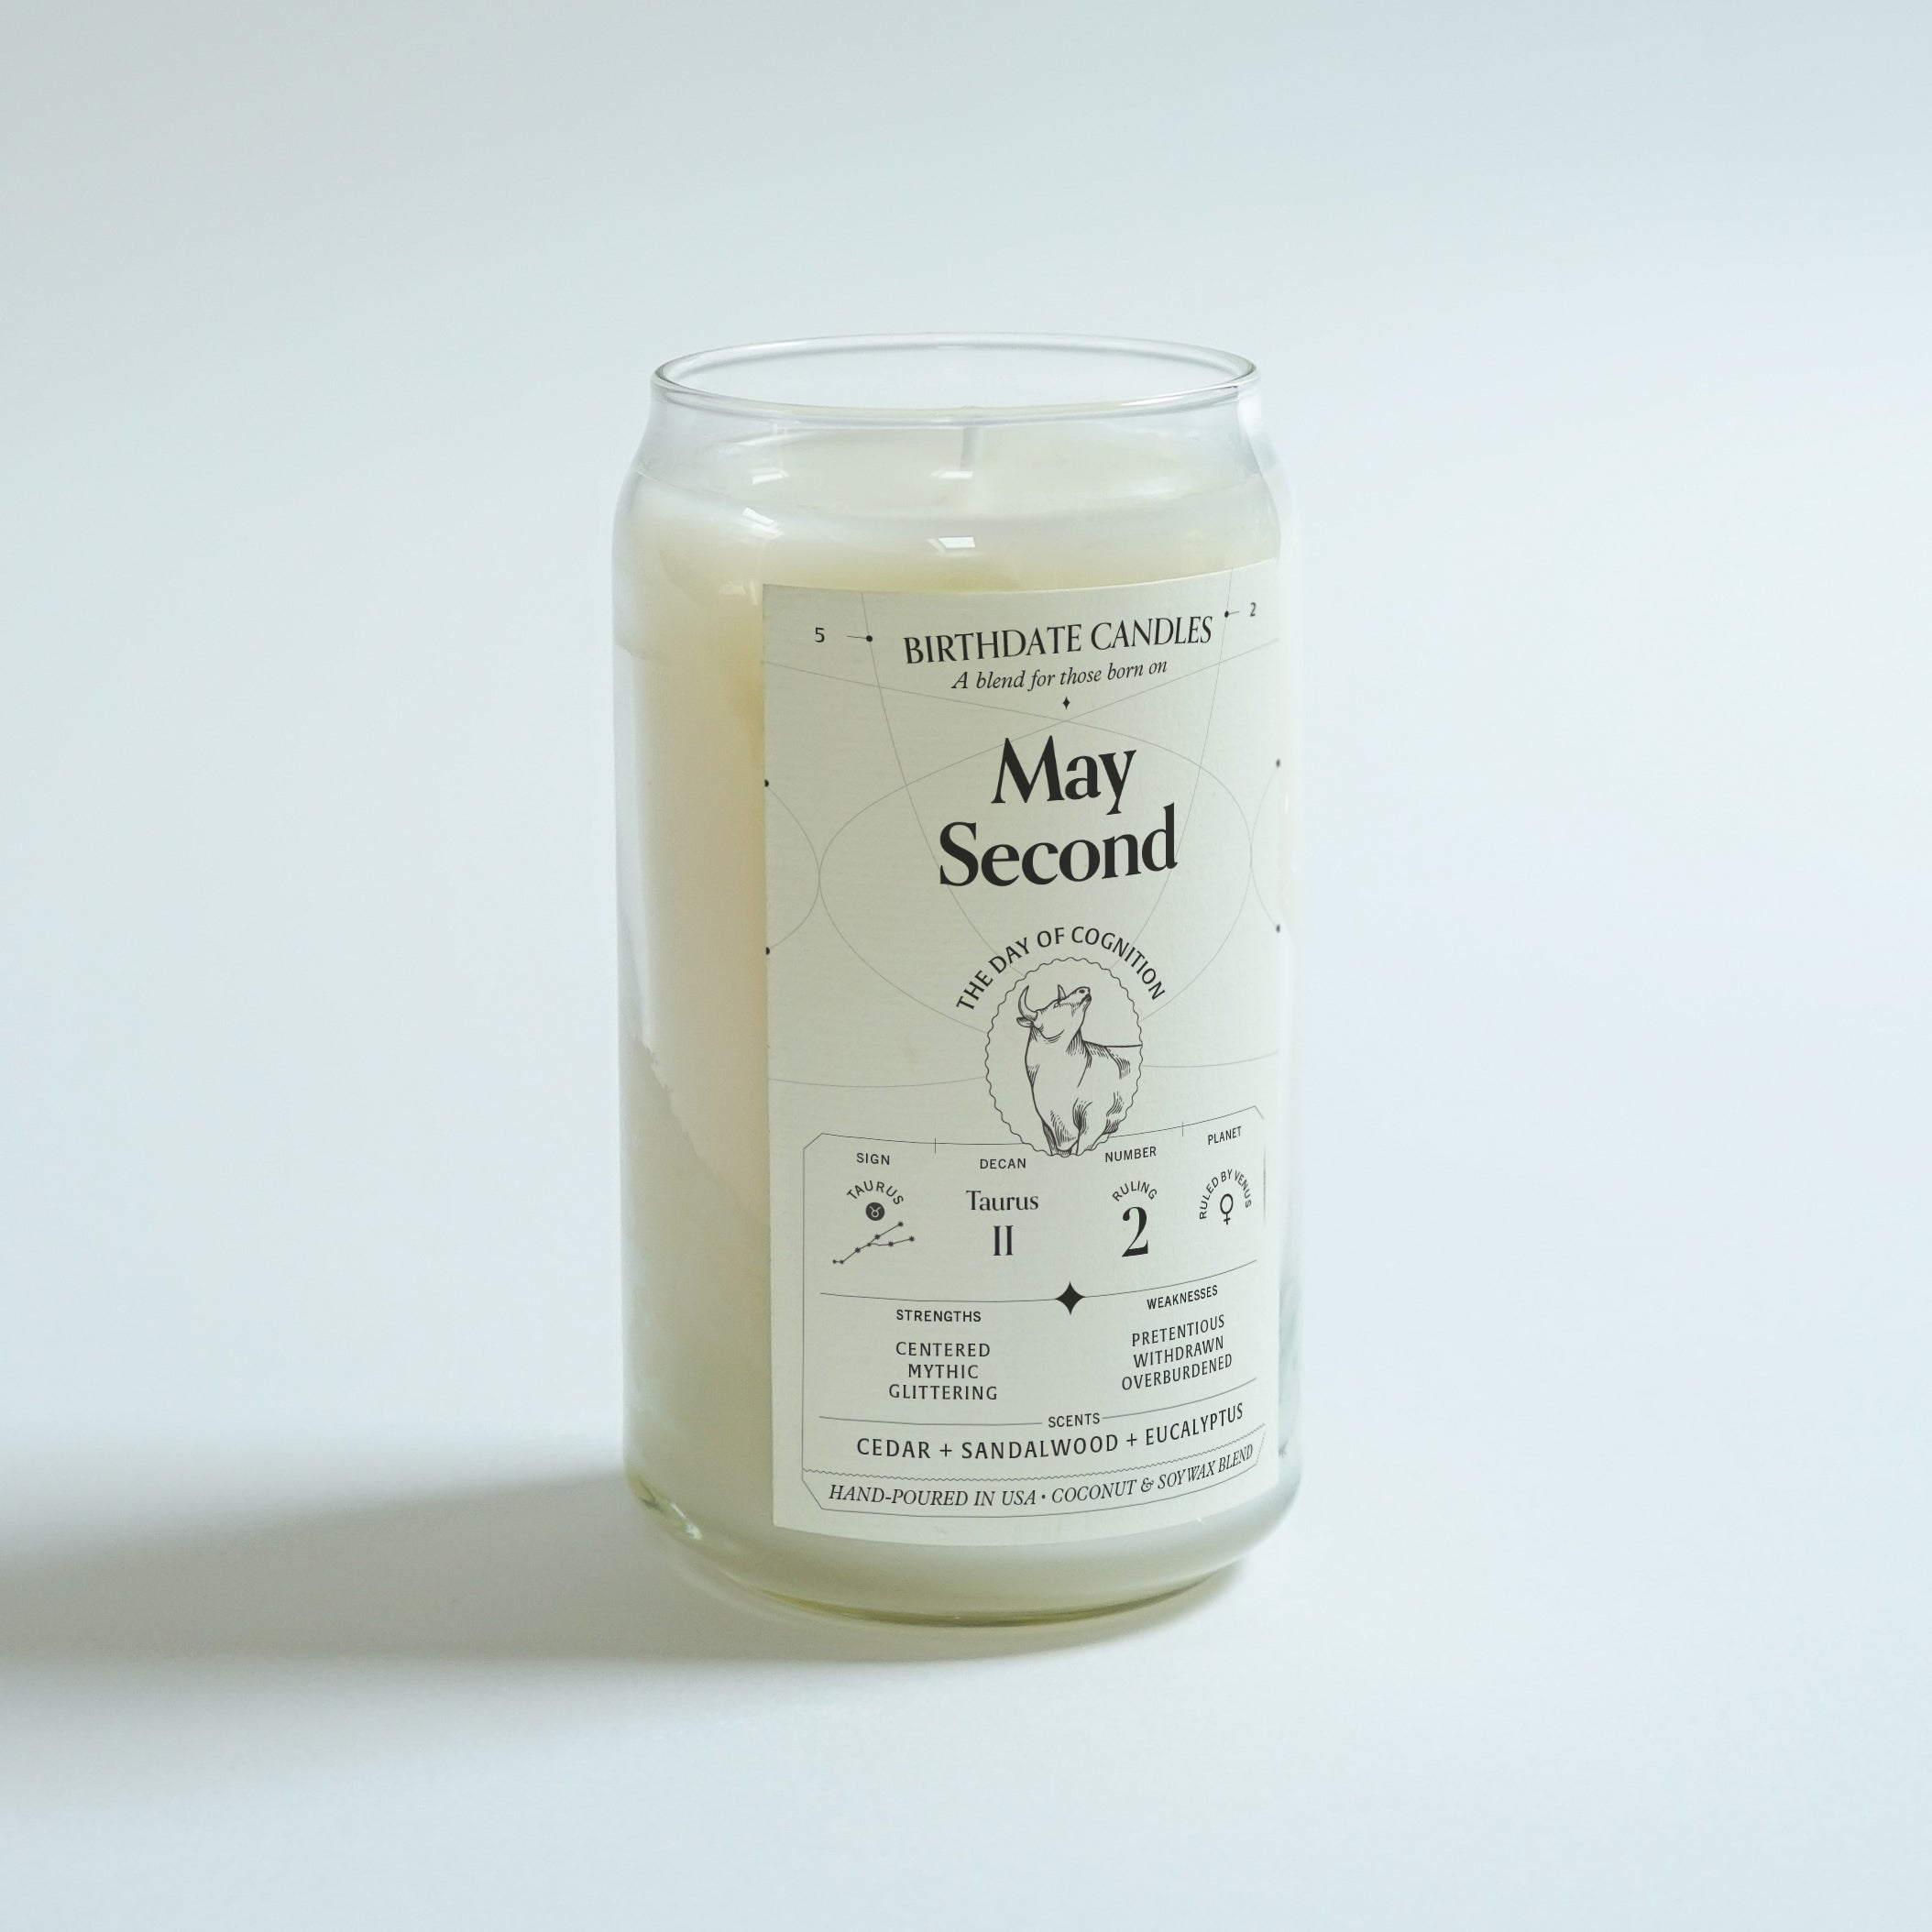 The May Second Candle